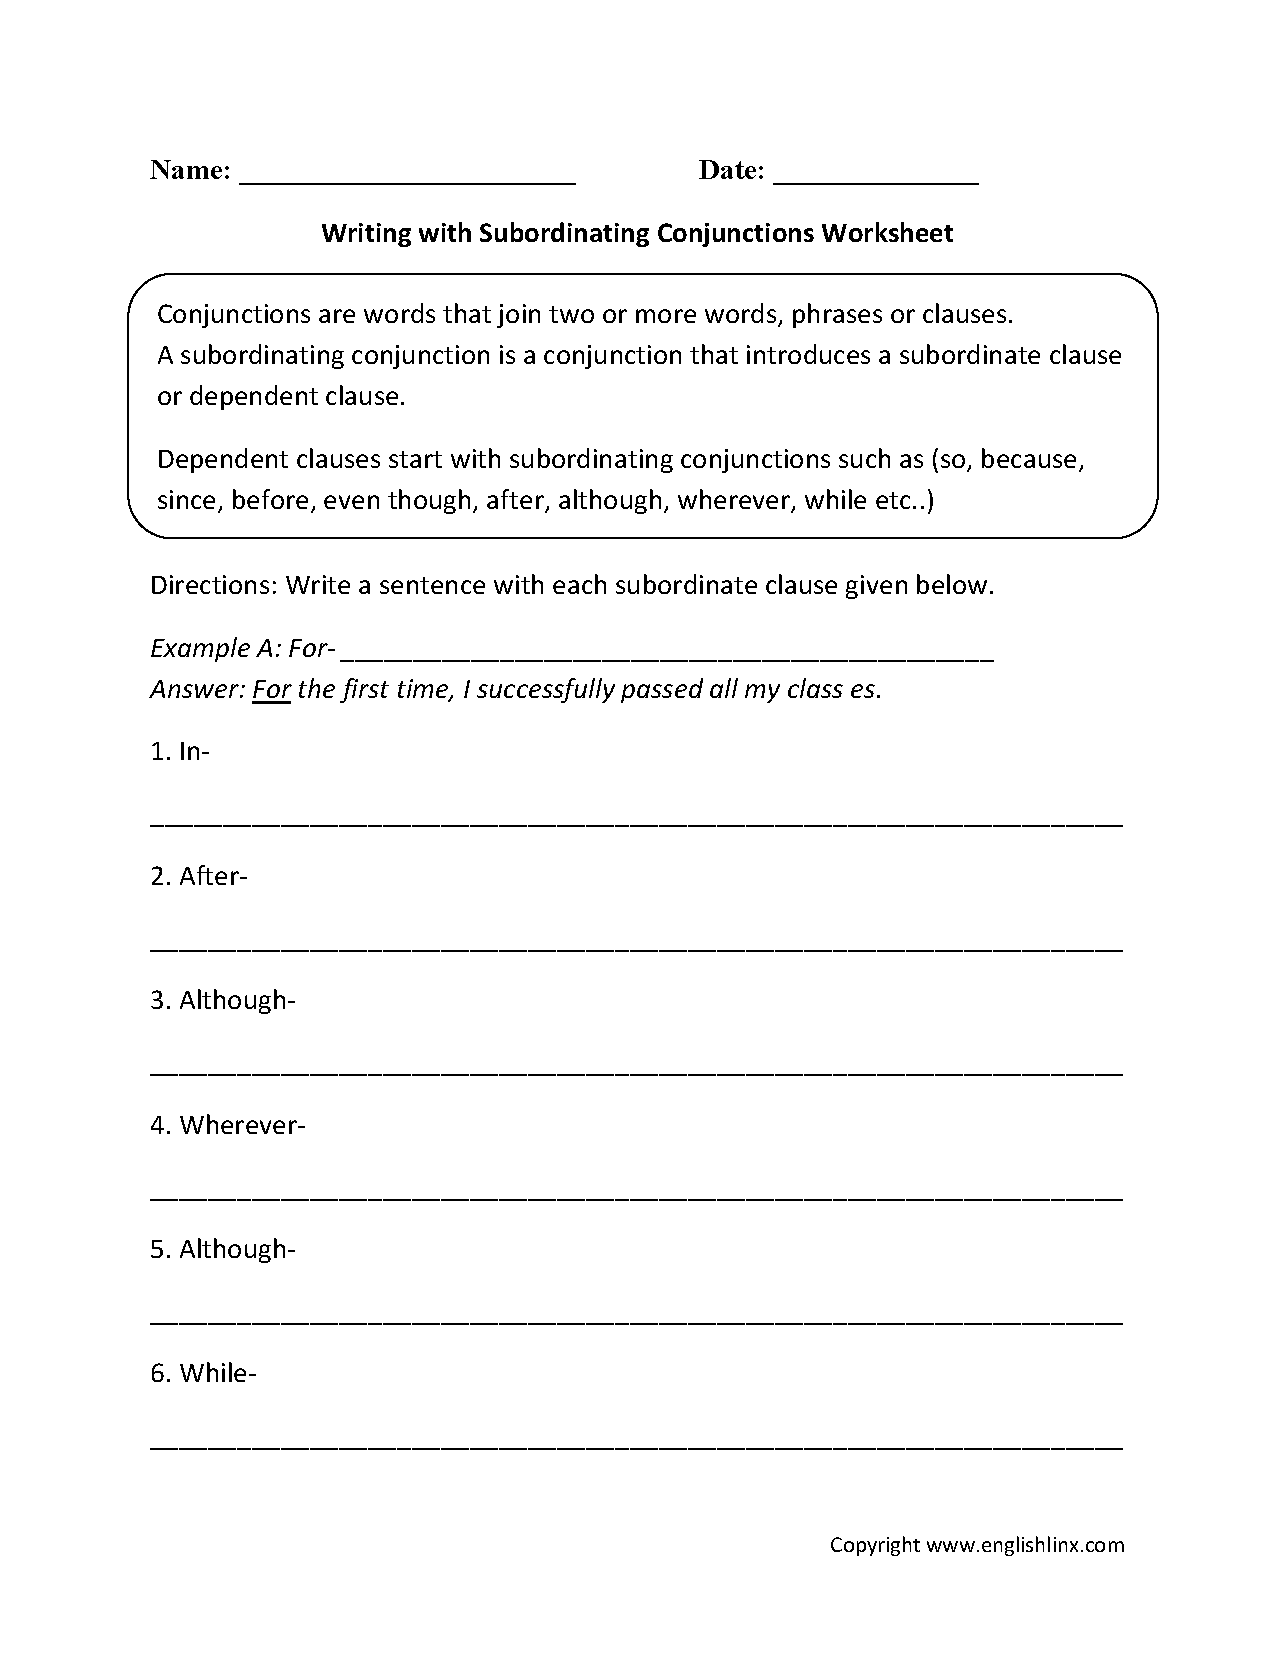 Conjunctions Worksheets – Subordinate Clauses Worksheet